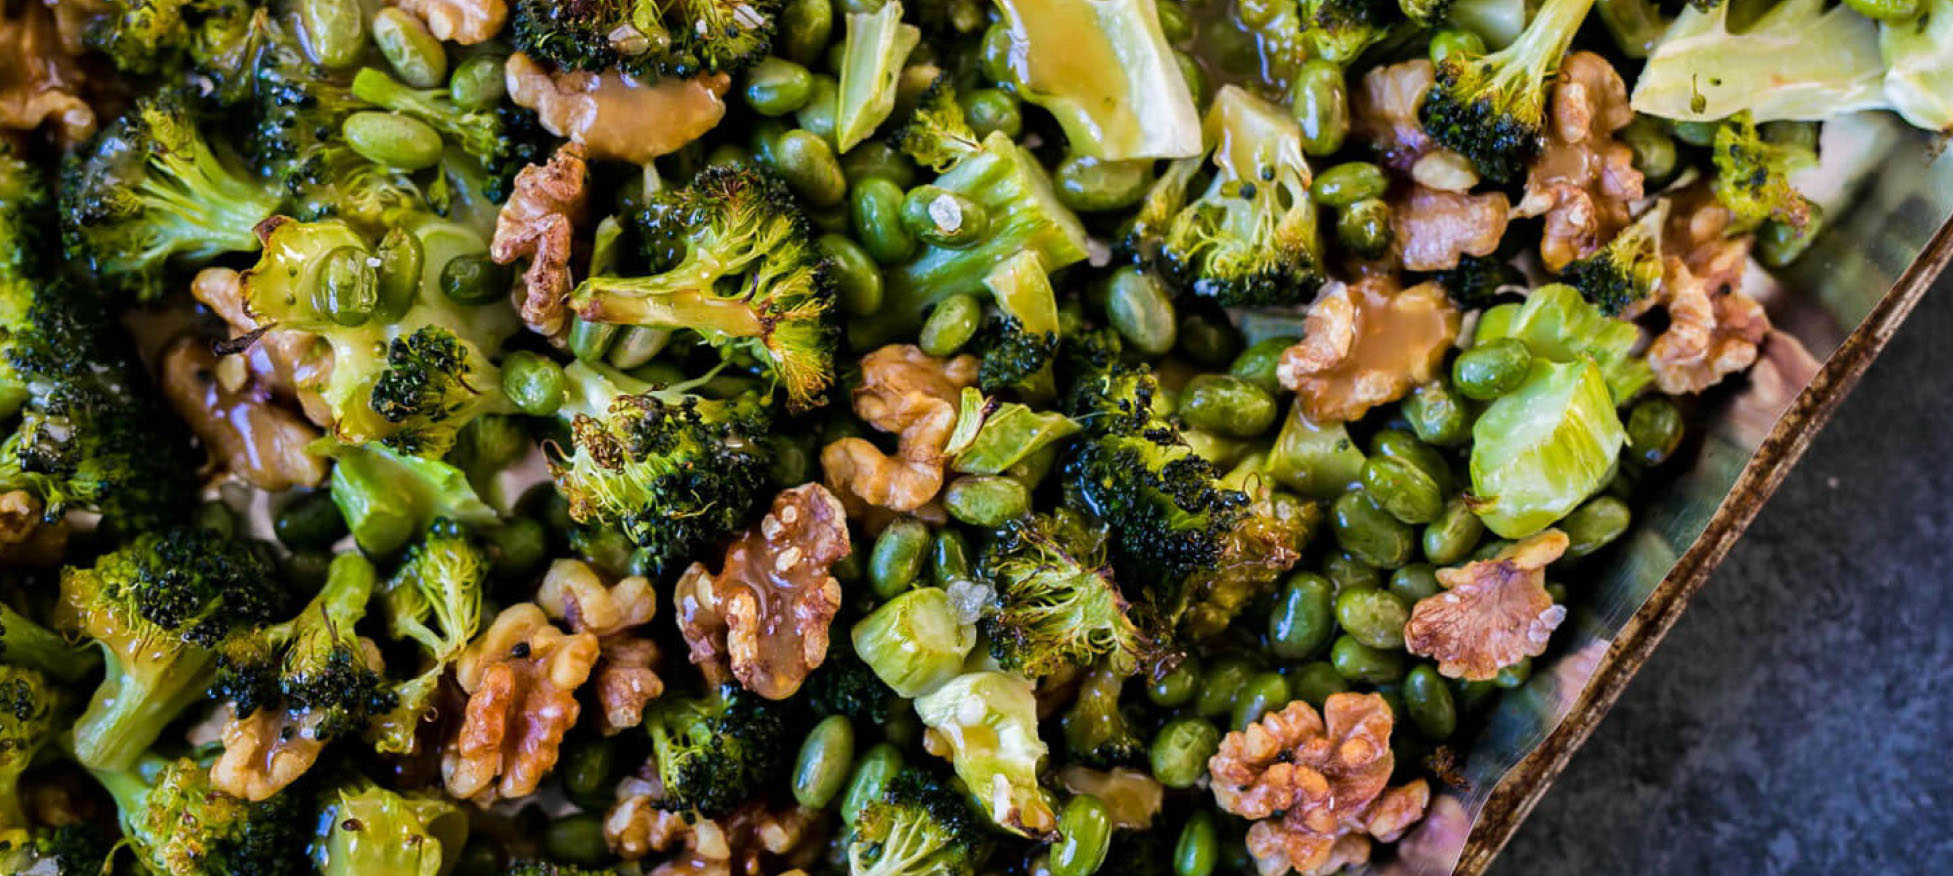 Roast Edamame and Broccoli Salad